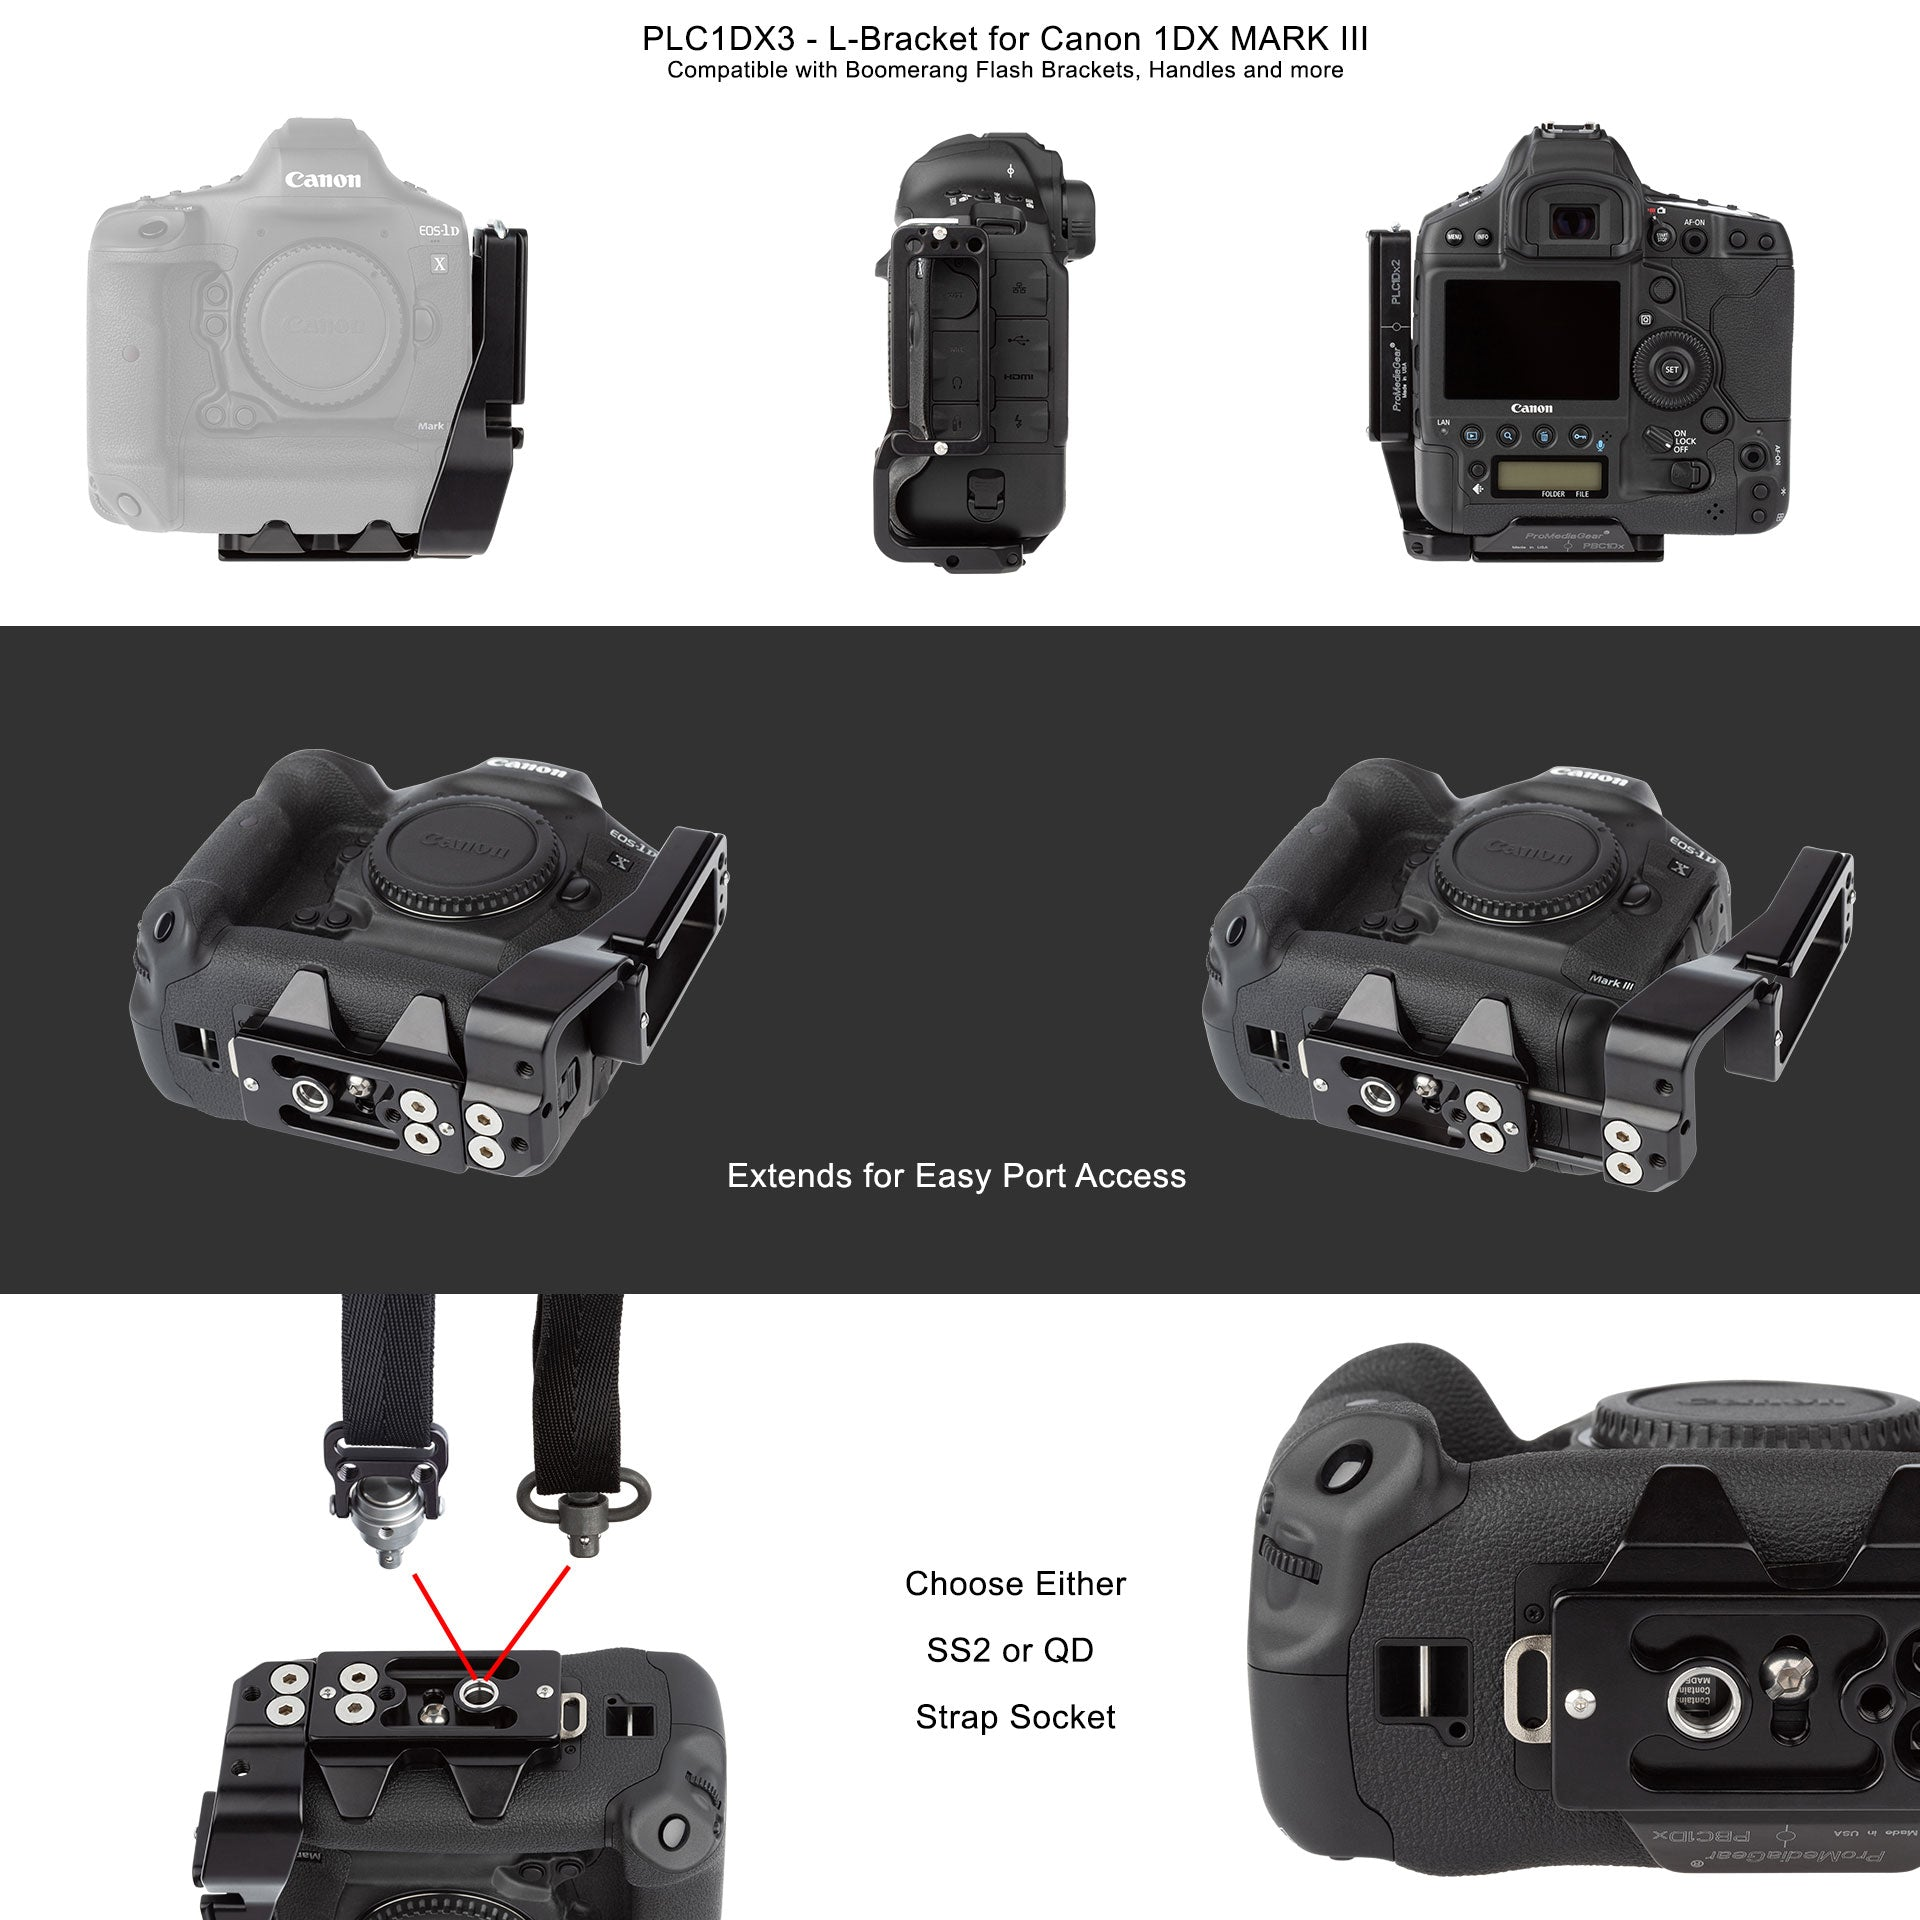 L-Bracket for Canon 1Dx Mark III